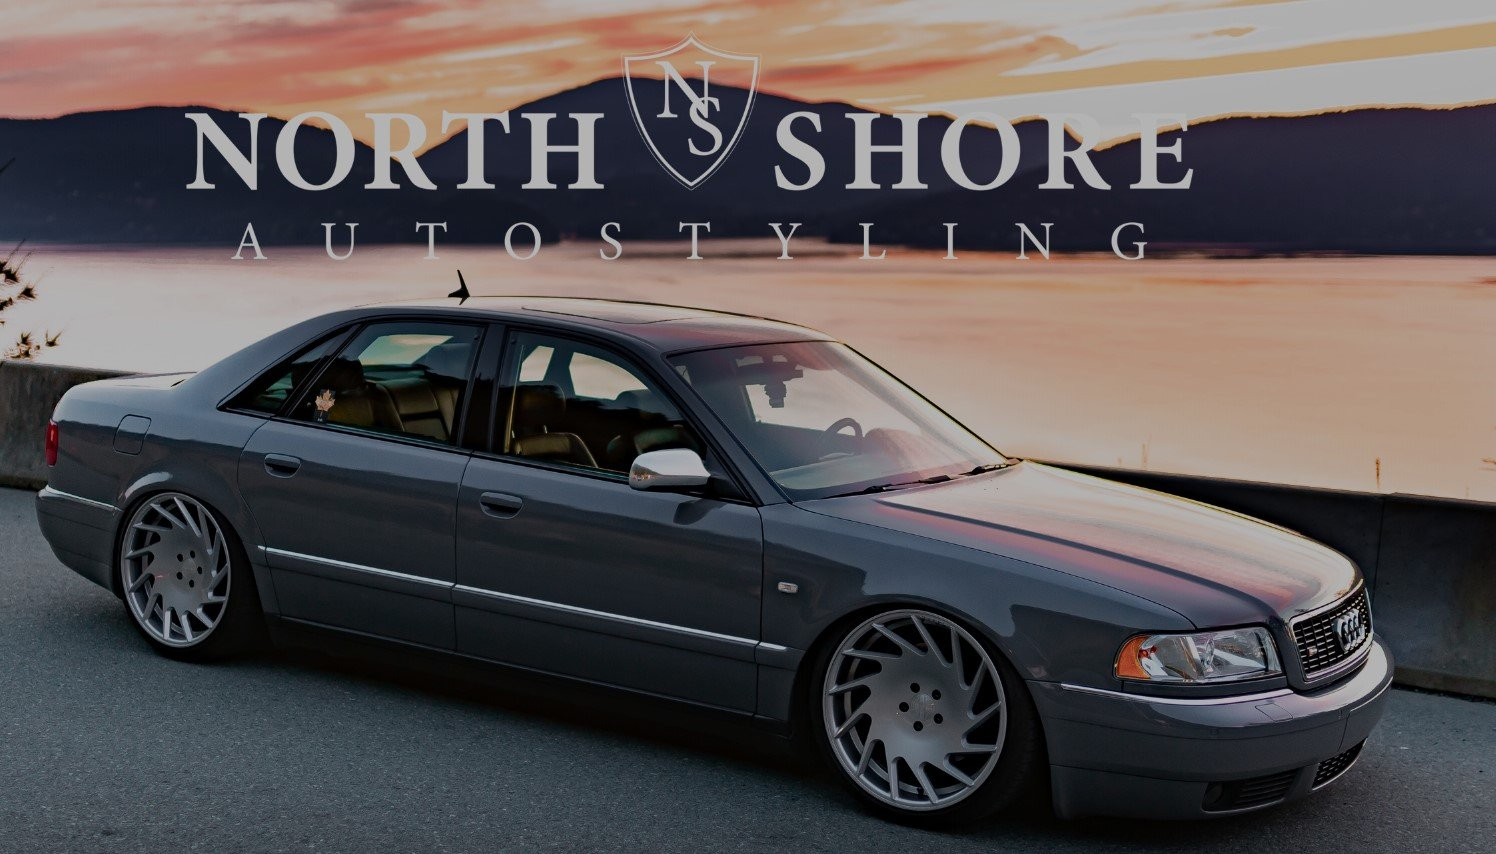 North Shore Auto Styling